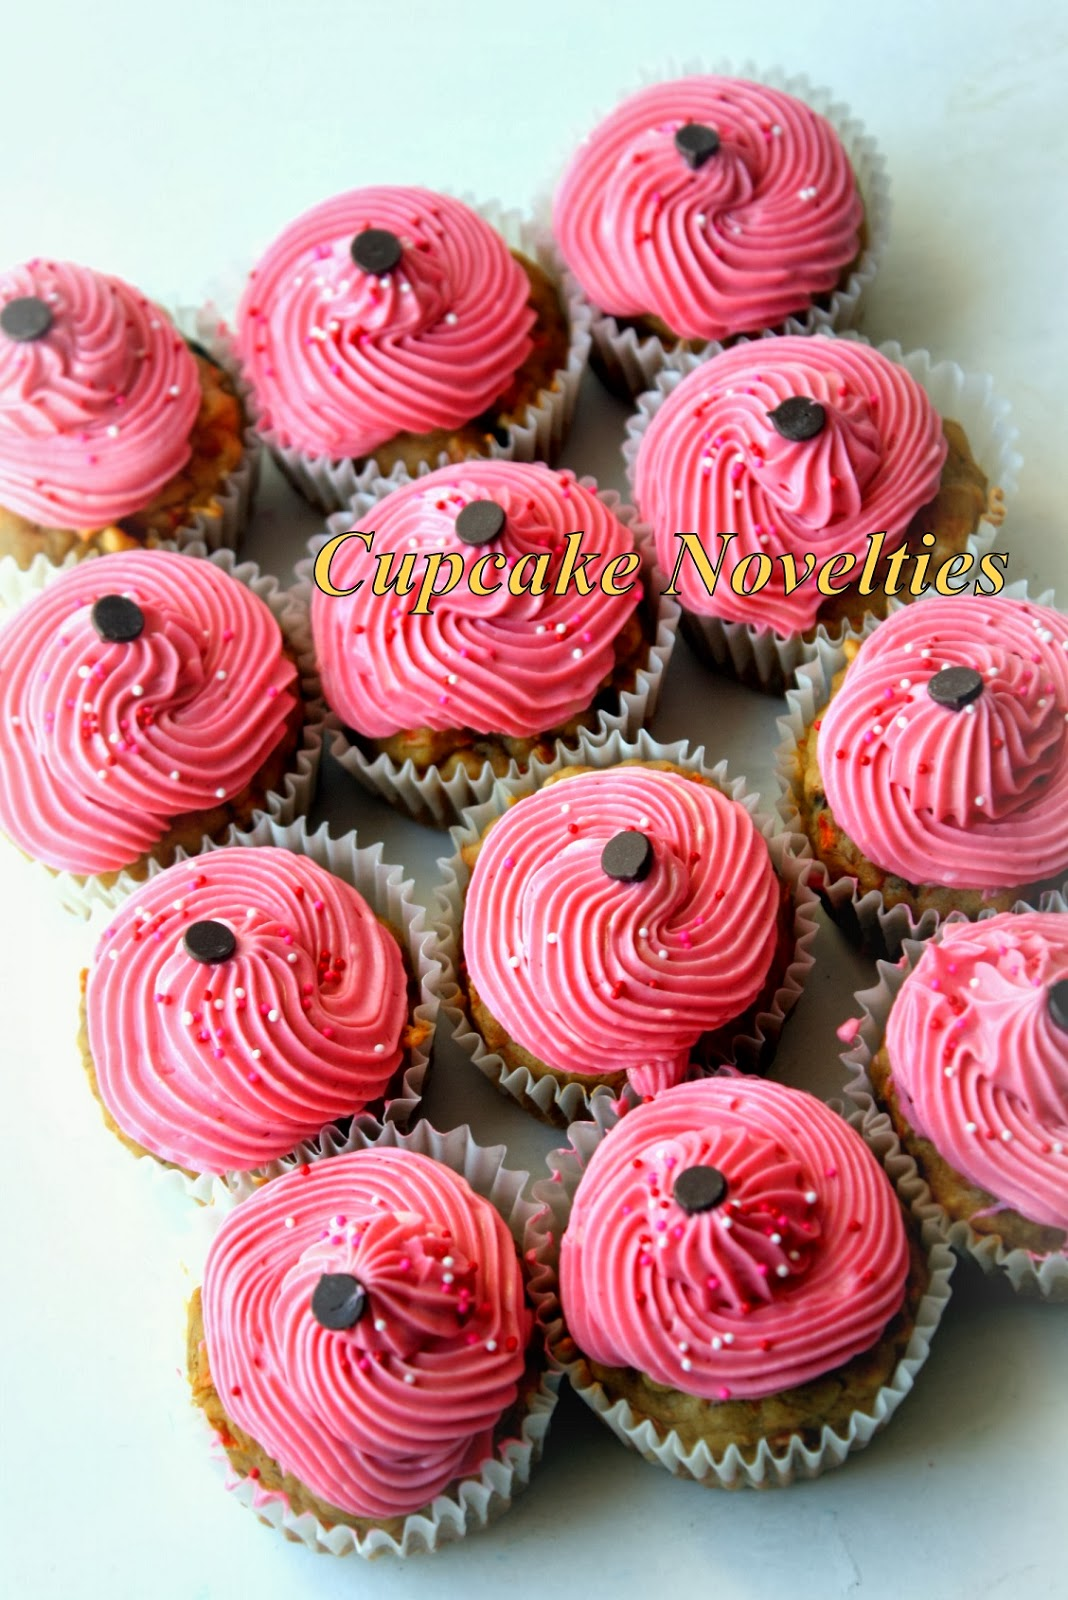 Cupcake Novelties - Cakes, Cupcakes, Wedding Cakes, Cake Pops ...